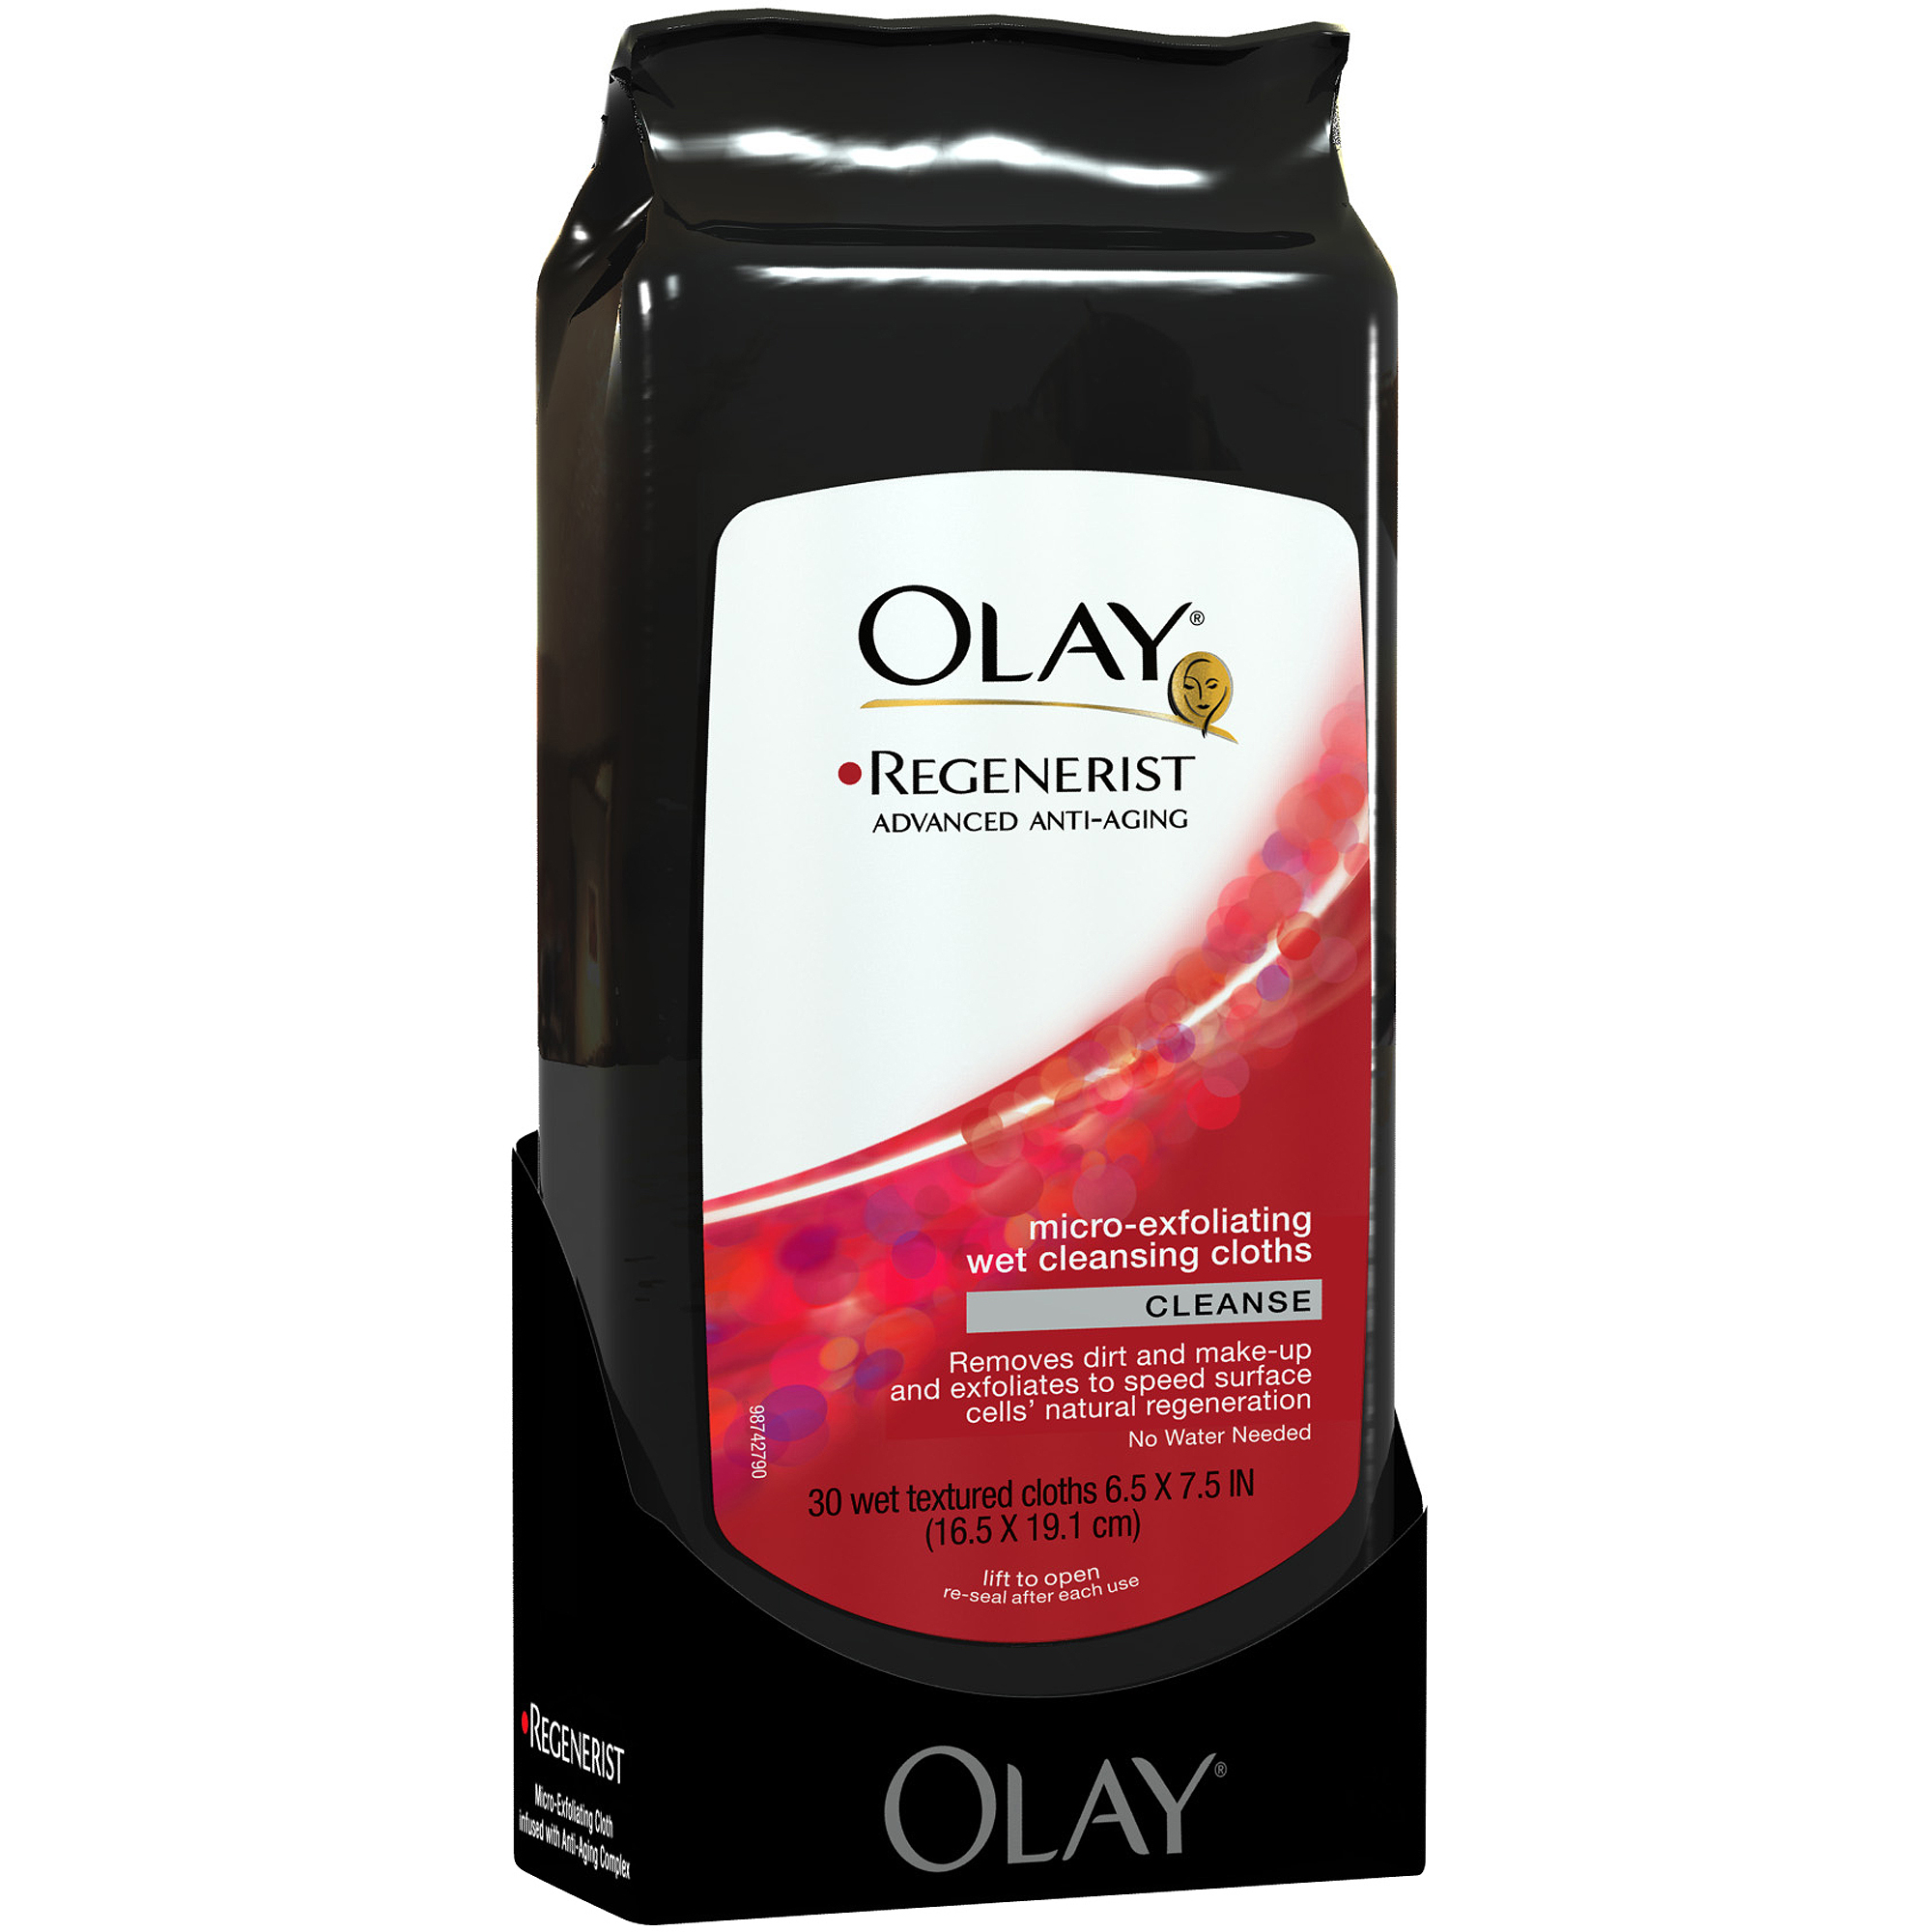 Olay Regenerist Micro-Exfoliating Facial Wet Cleansing Cloths 30 Count